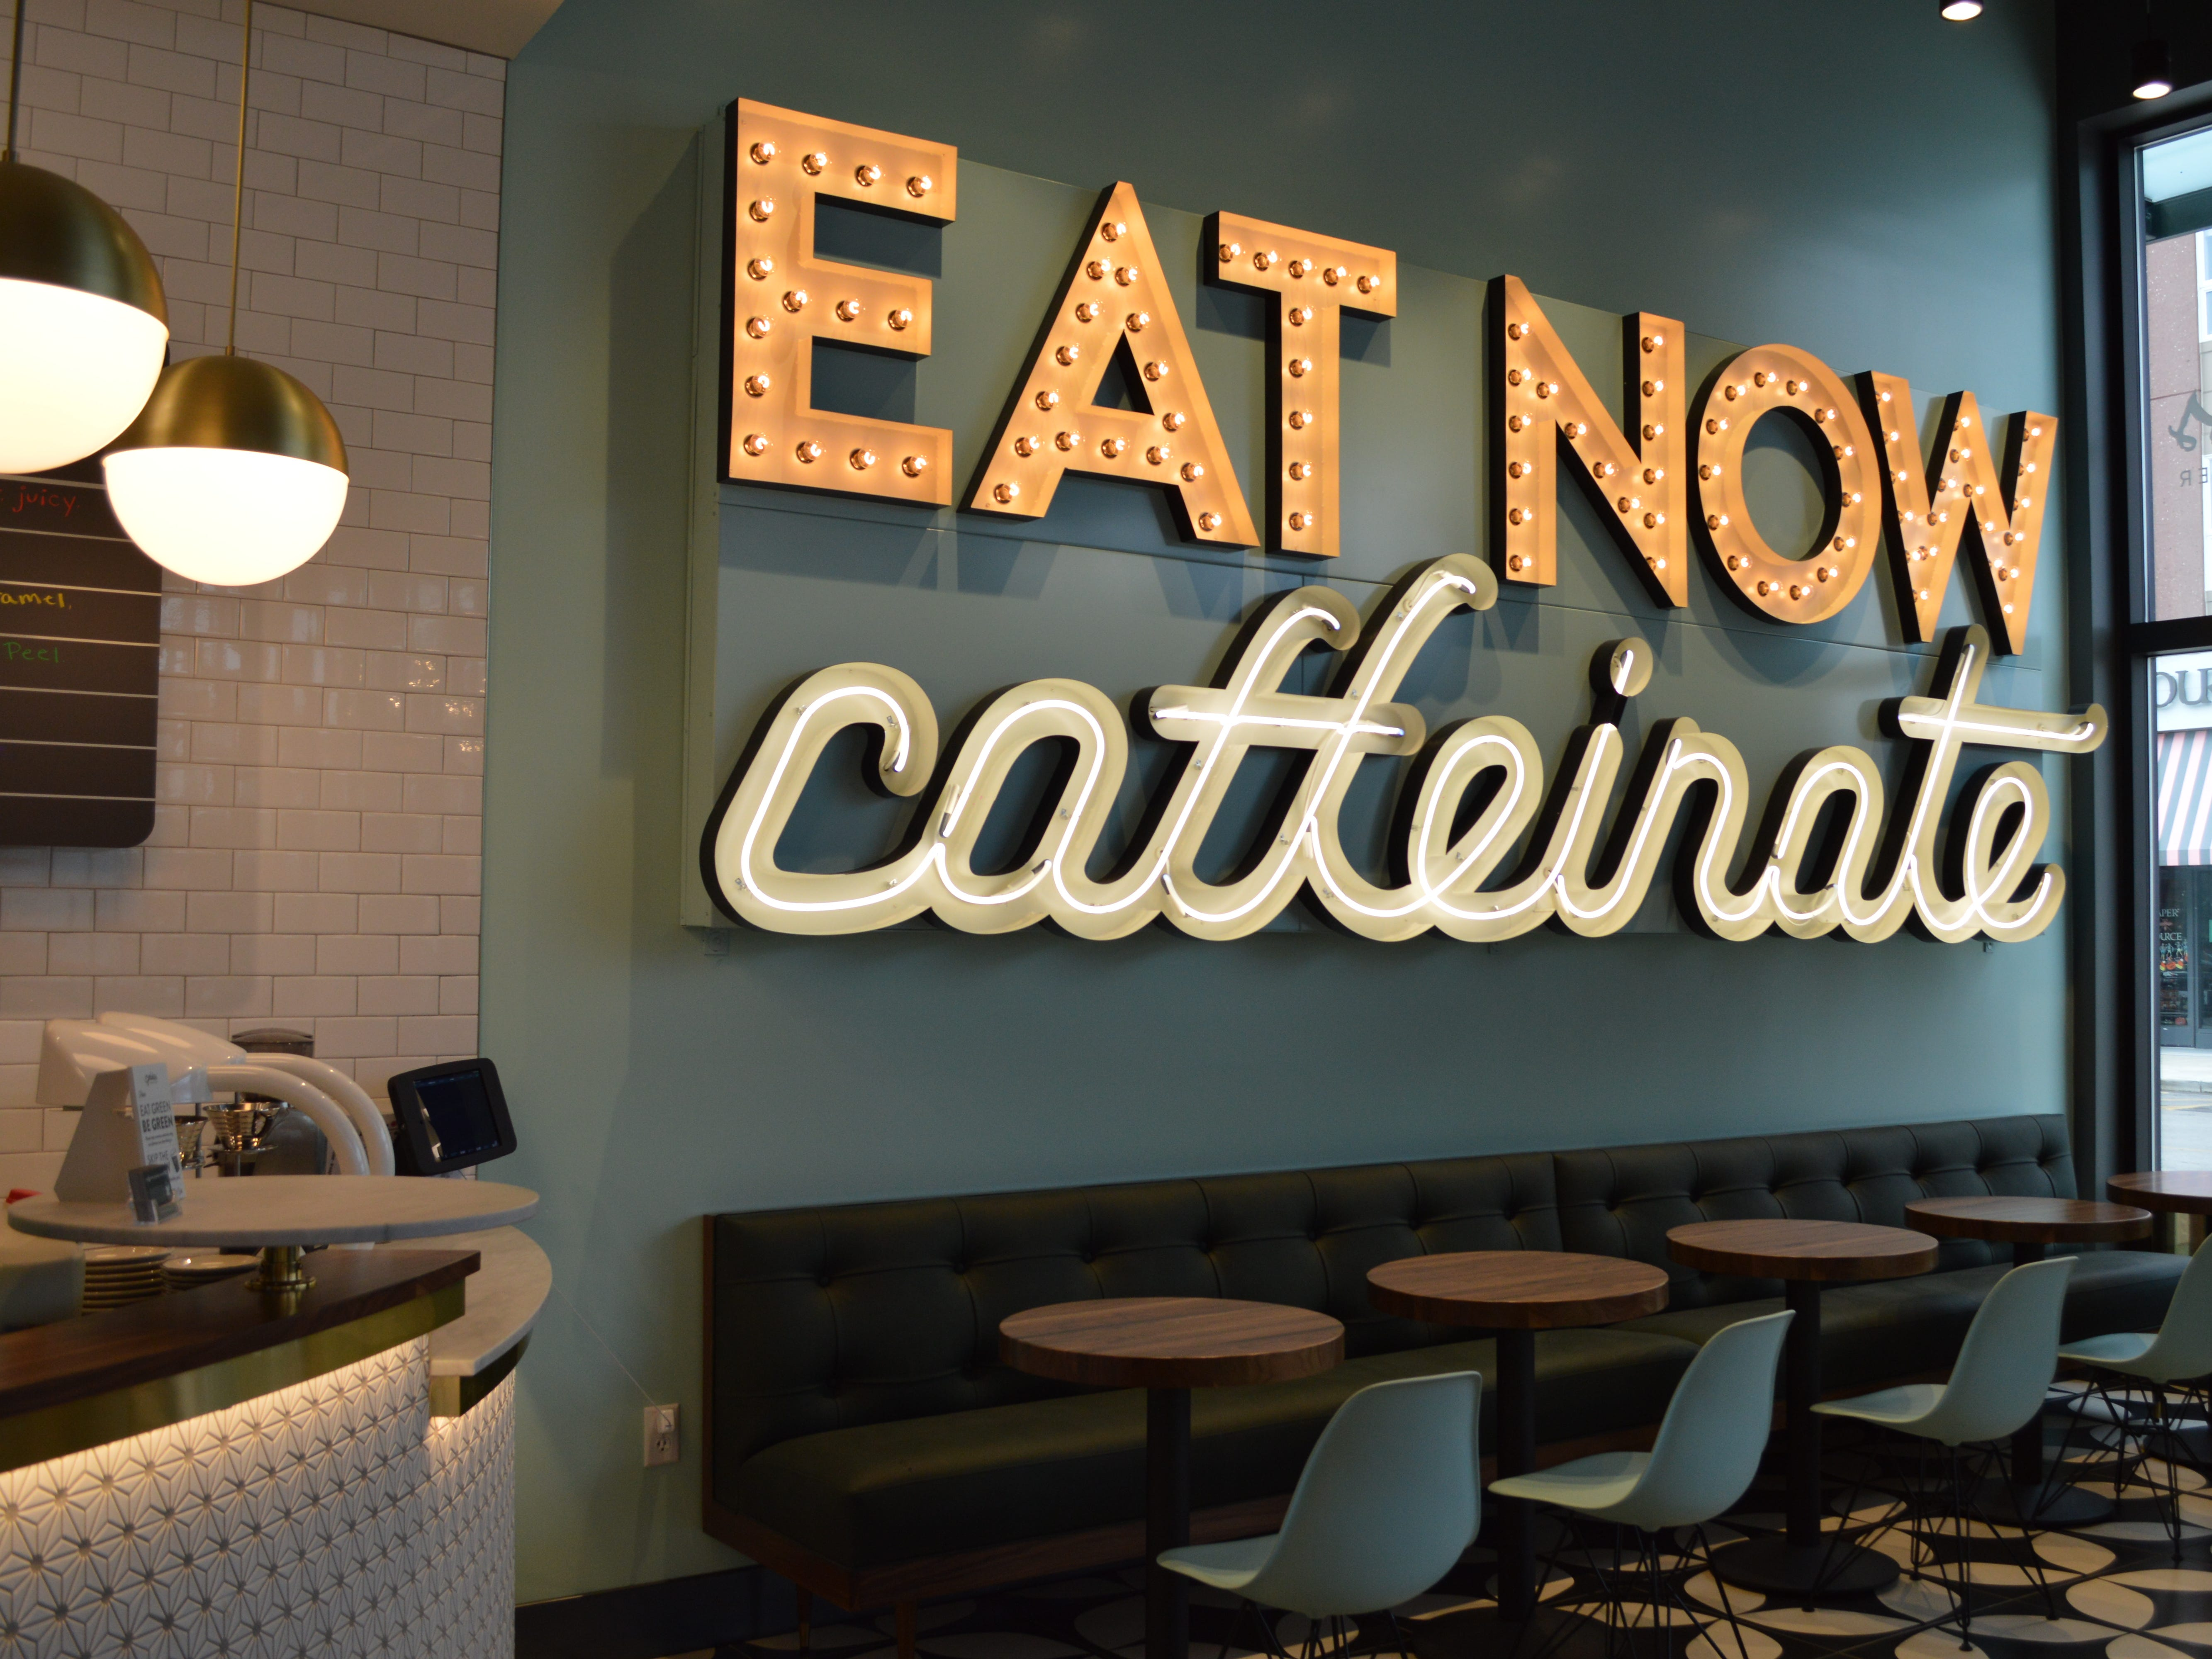 Xan Creative designer Dana Ensing said the interior was mid-century-inspired with a modern, energetic twist.